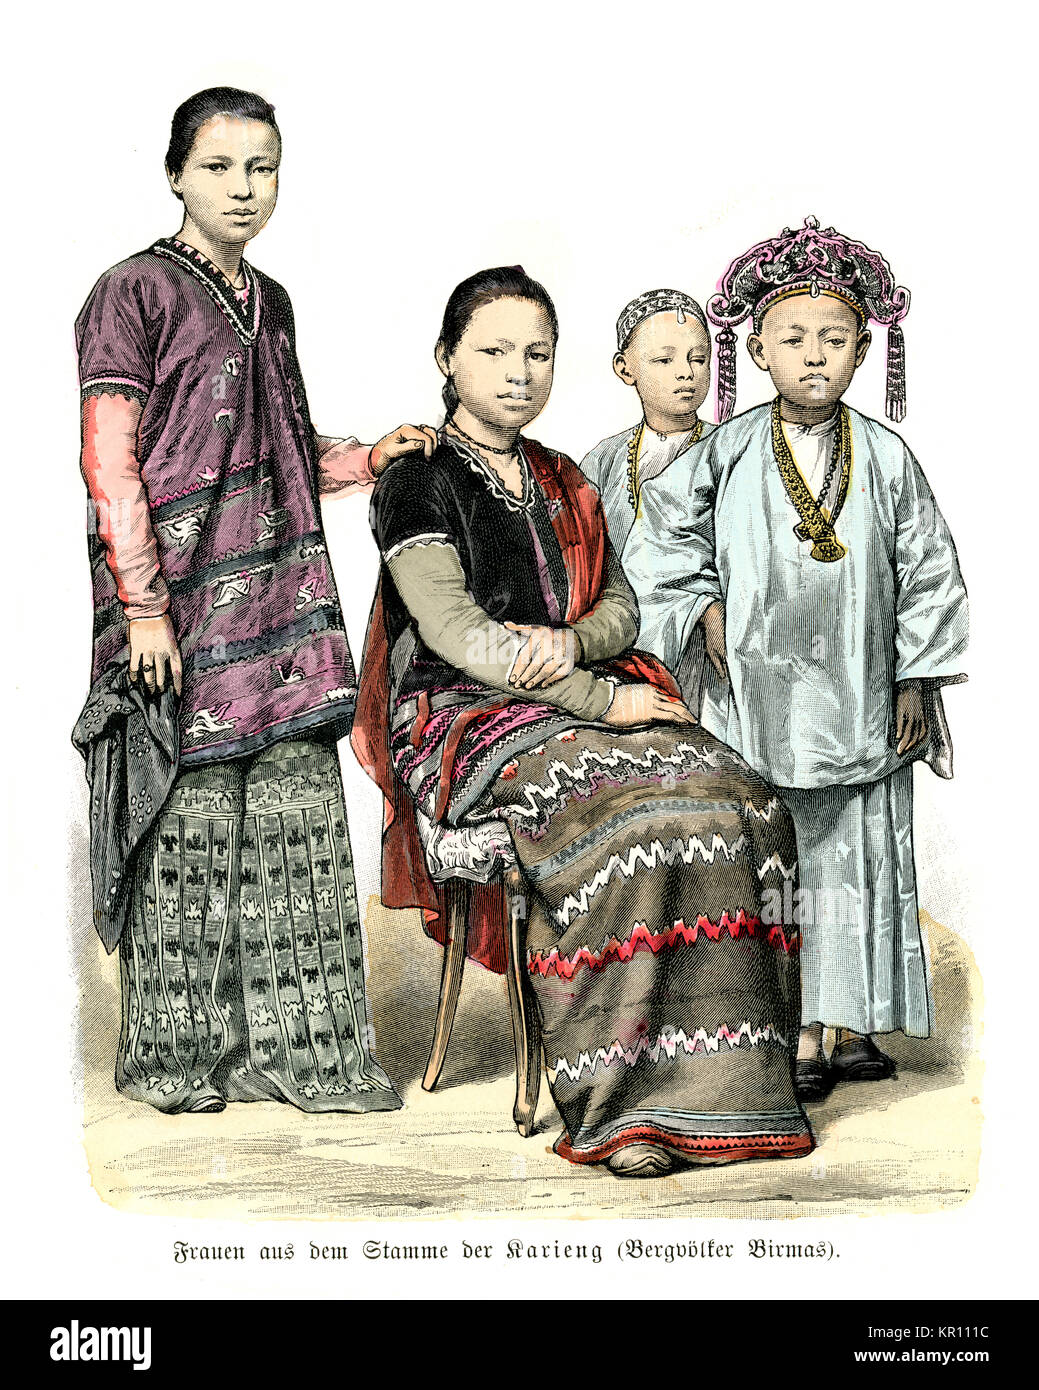 Burmese women and children in traditional dress, 19th Century, 1886 - Stock Image